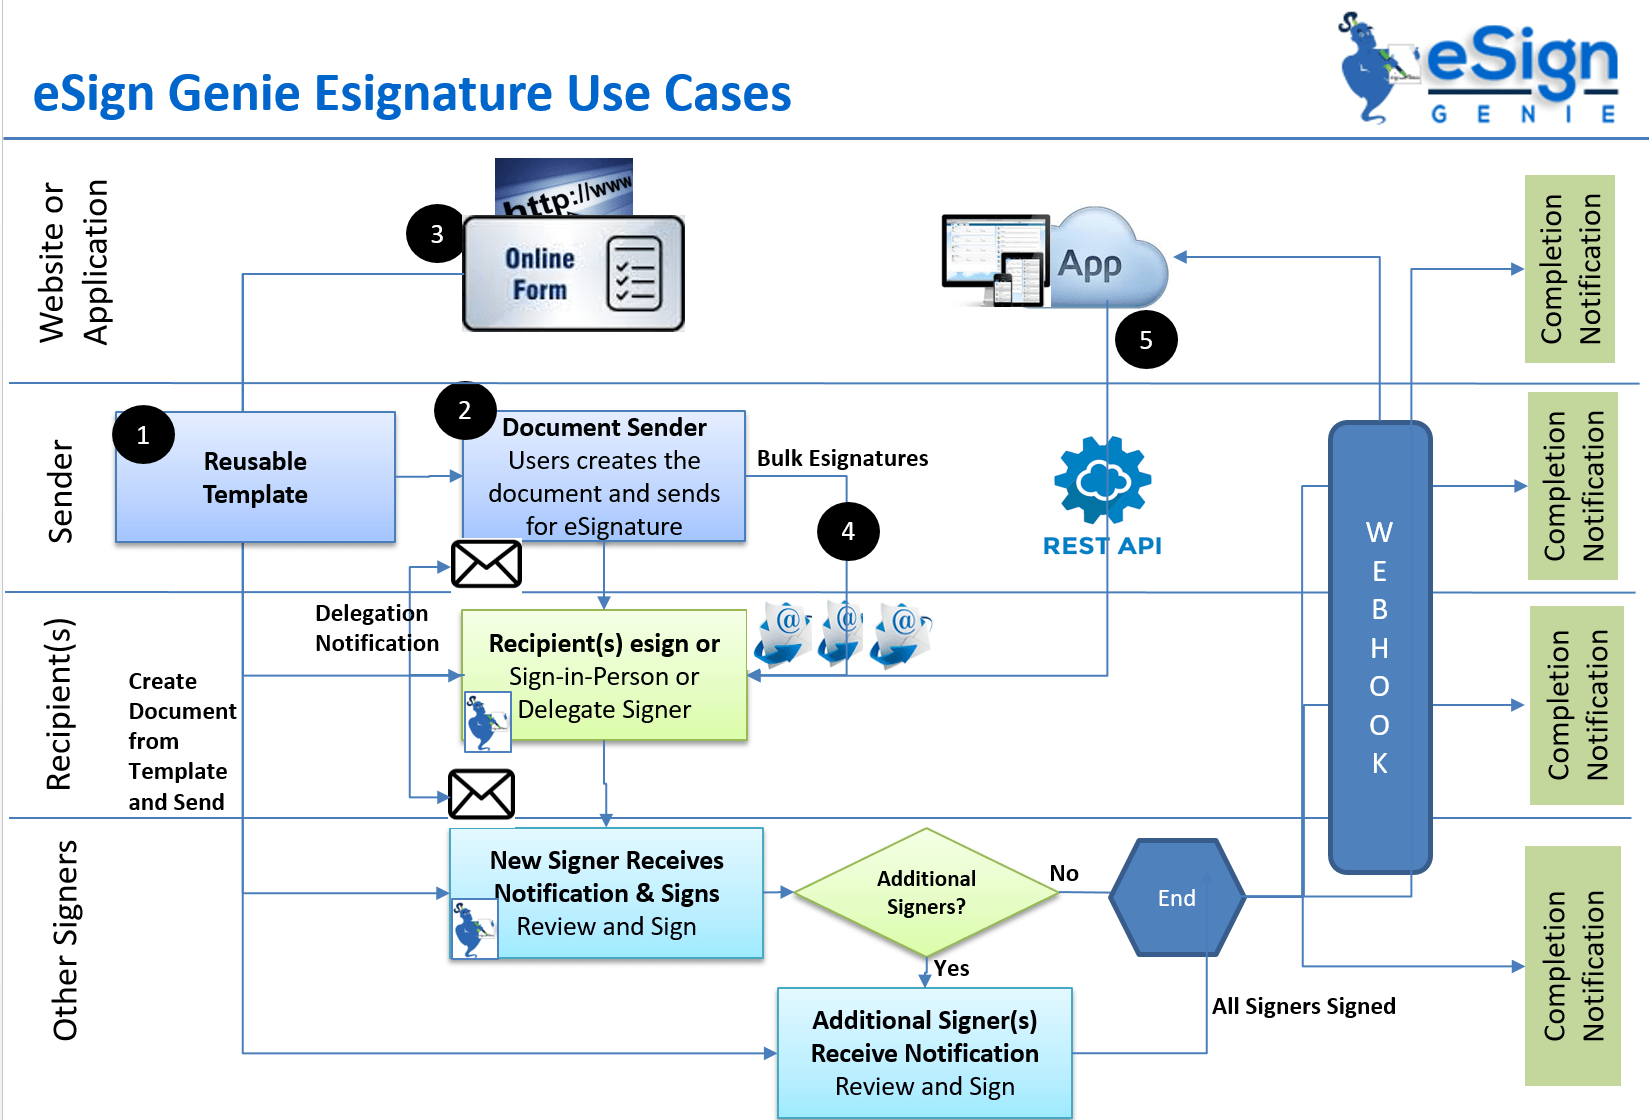 Diagram displaying eSign Genie eSignature Use Cases applicable to websites/applications, senders, recipients, and for other signers